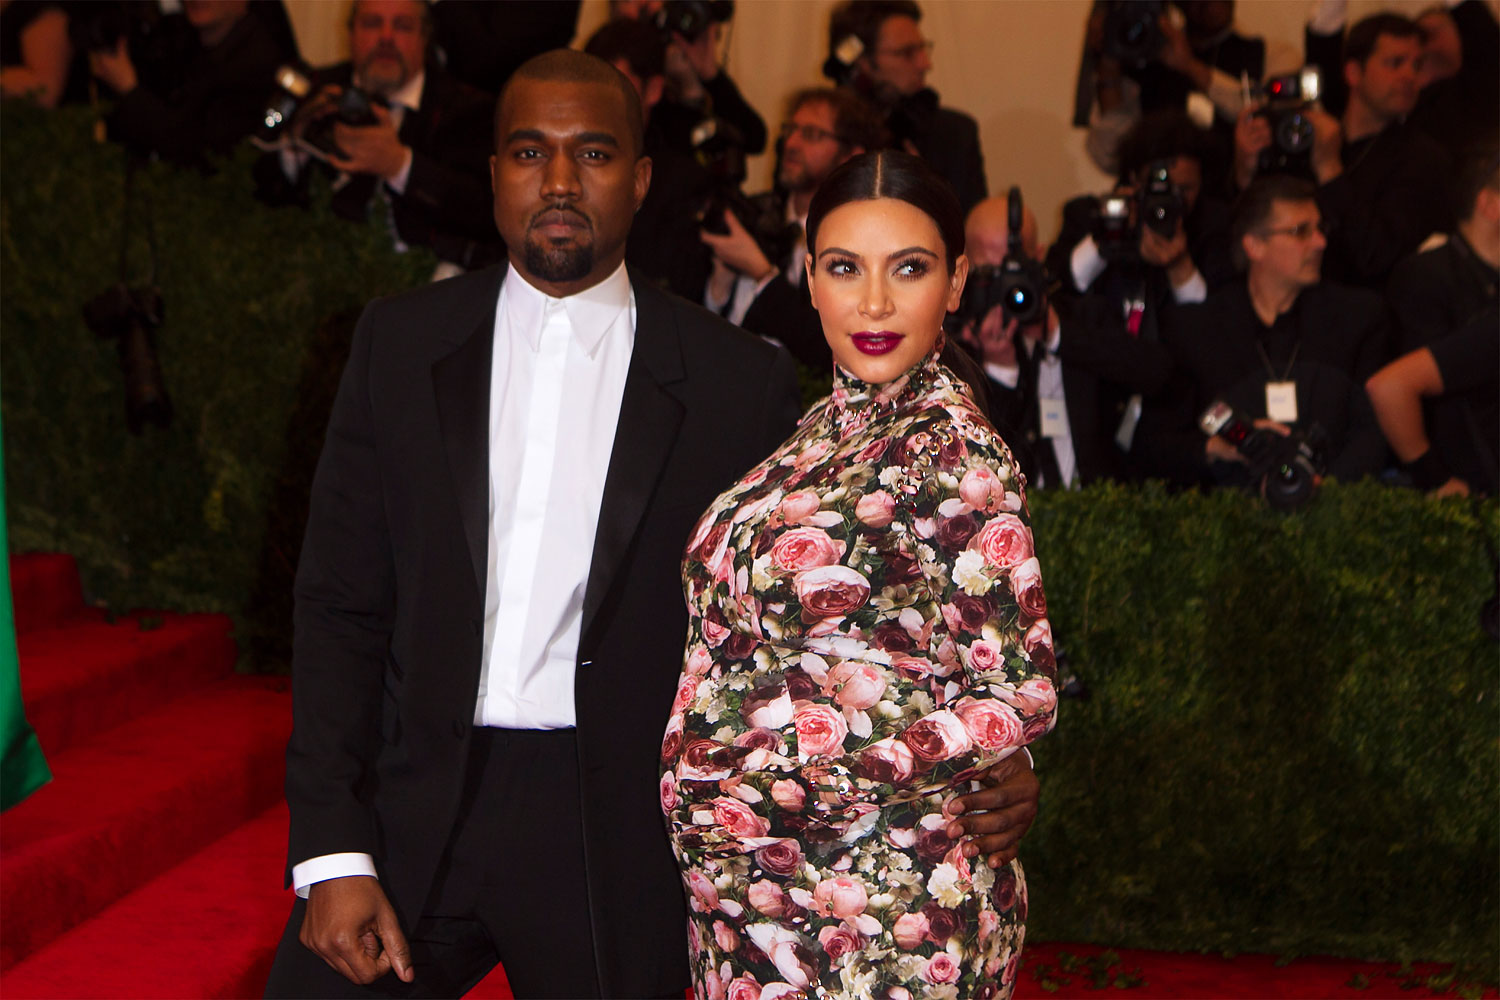 Singer Kanye West and reality tv actress Kim Kardashian arrive at the Metropolitan Museum of Art Costume Institute Benefit celebrating the opening of  PUNK: Chaos to Couture  in New York